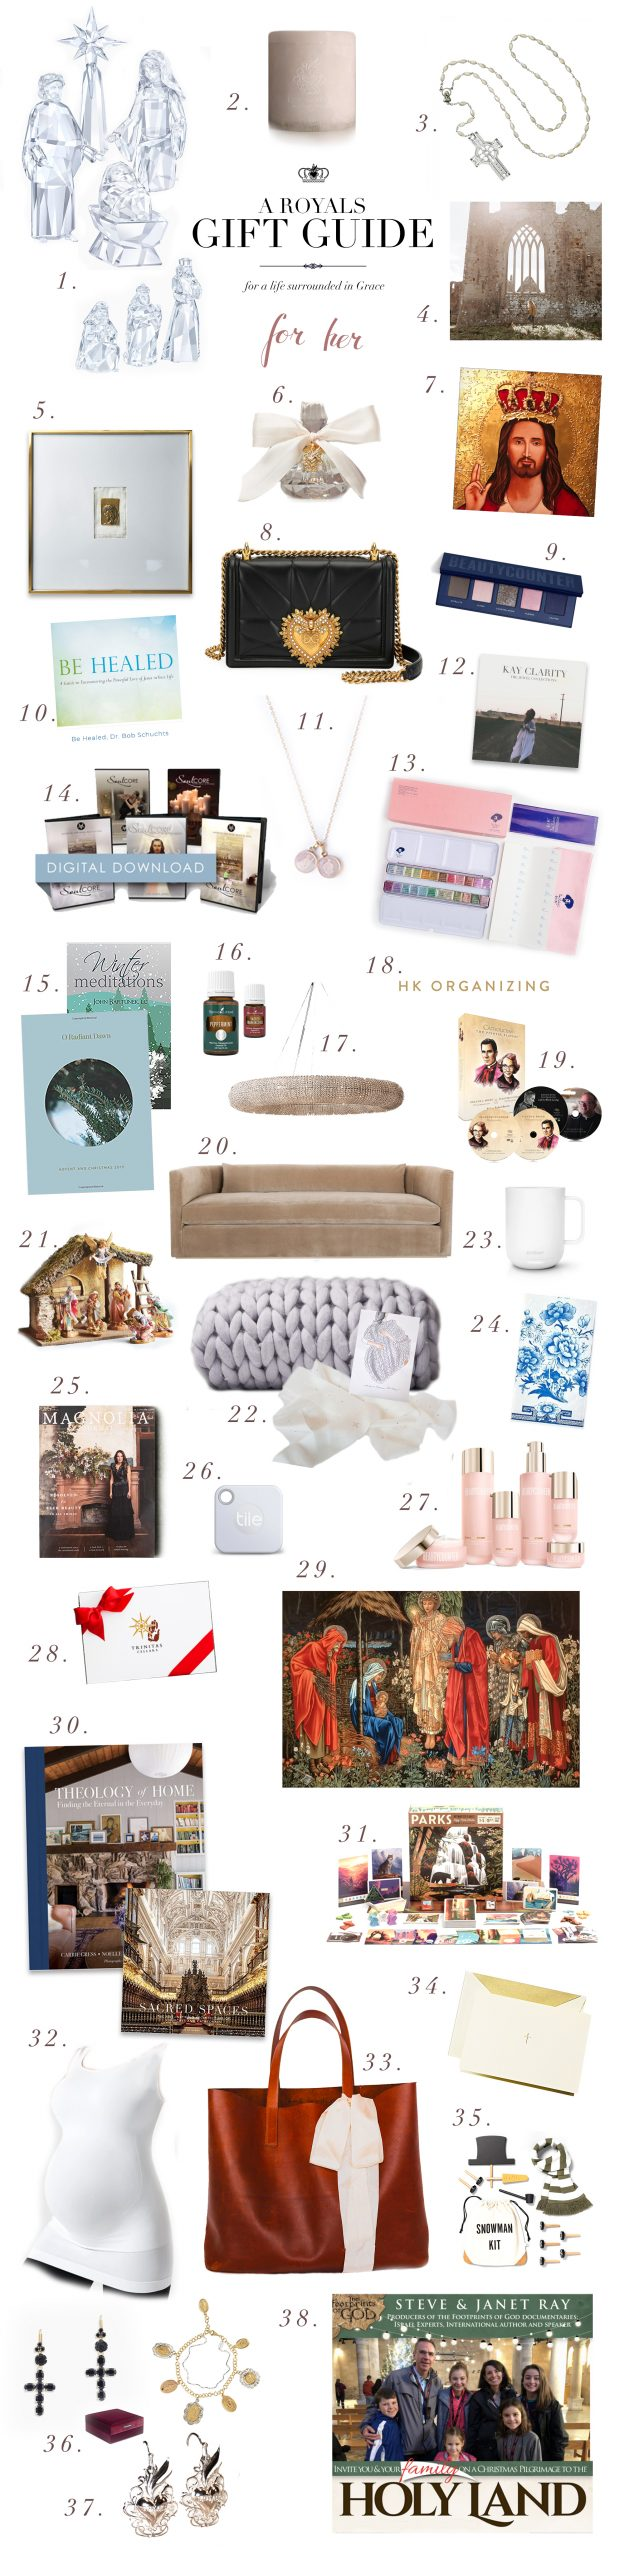 2019 Gift Guide - For Her